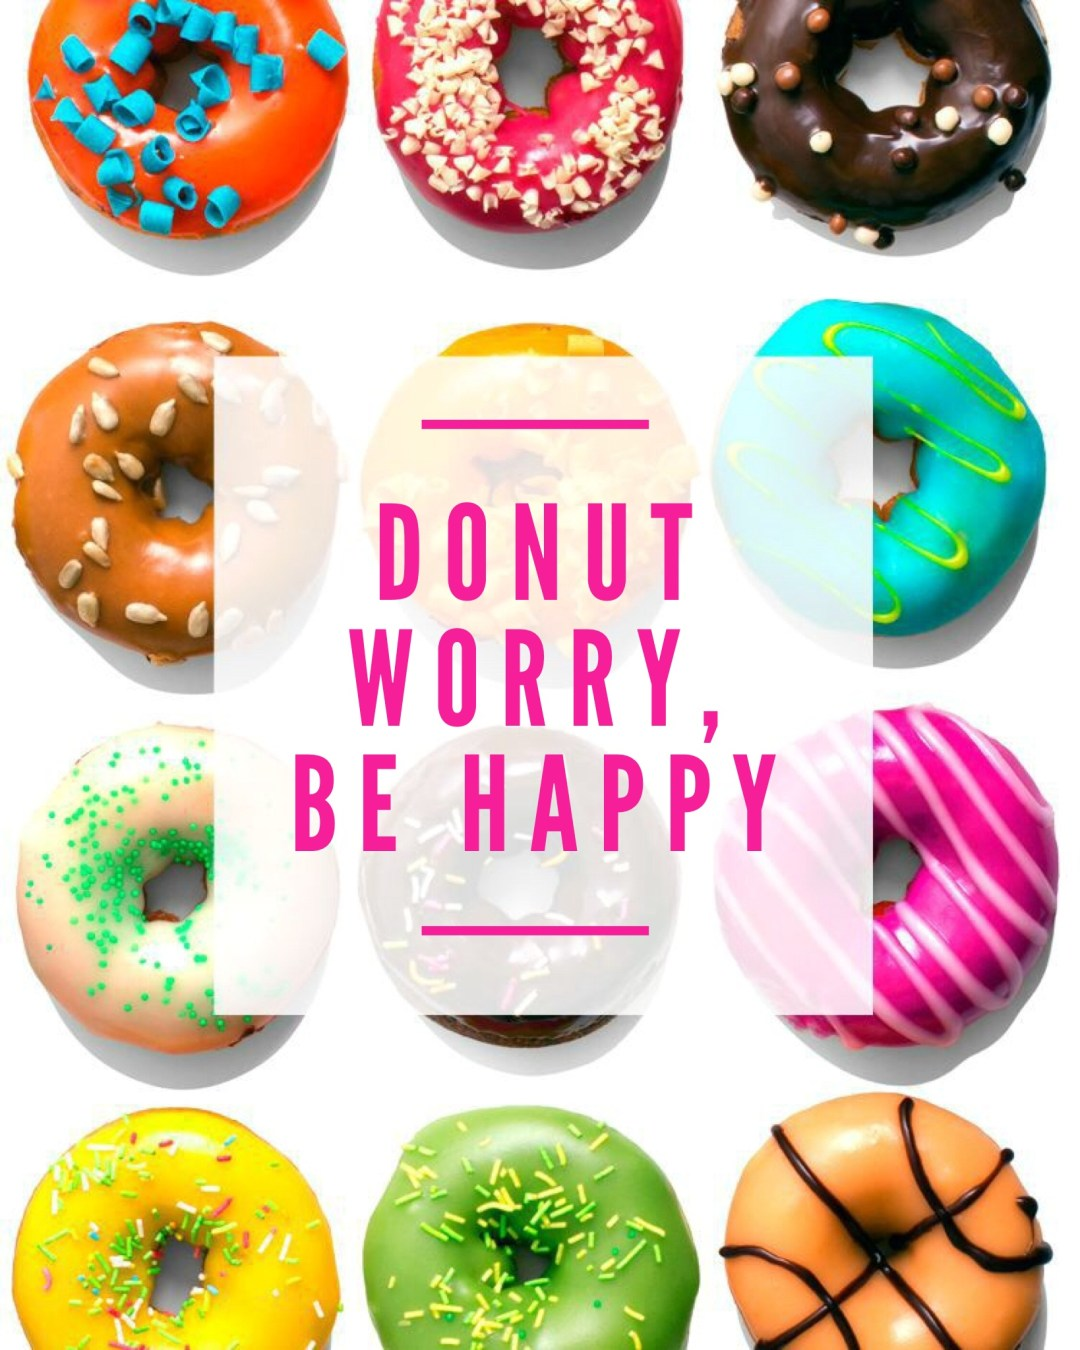 Friday Freebie by Twinspiration: http://twinspiration.co/friday-freebie-donut-printable/